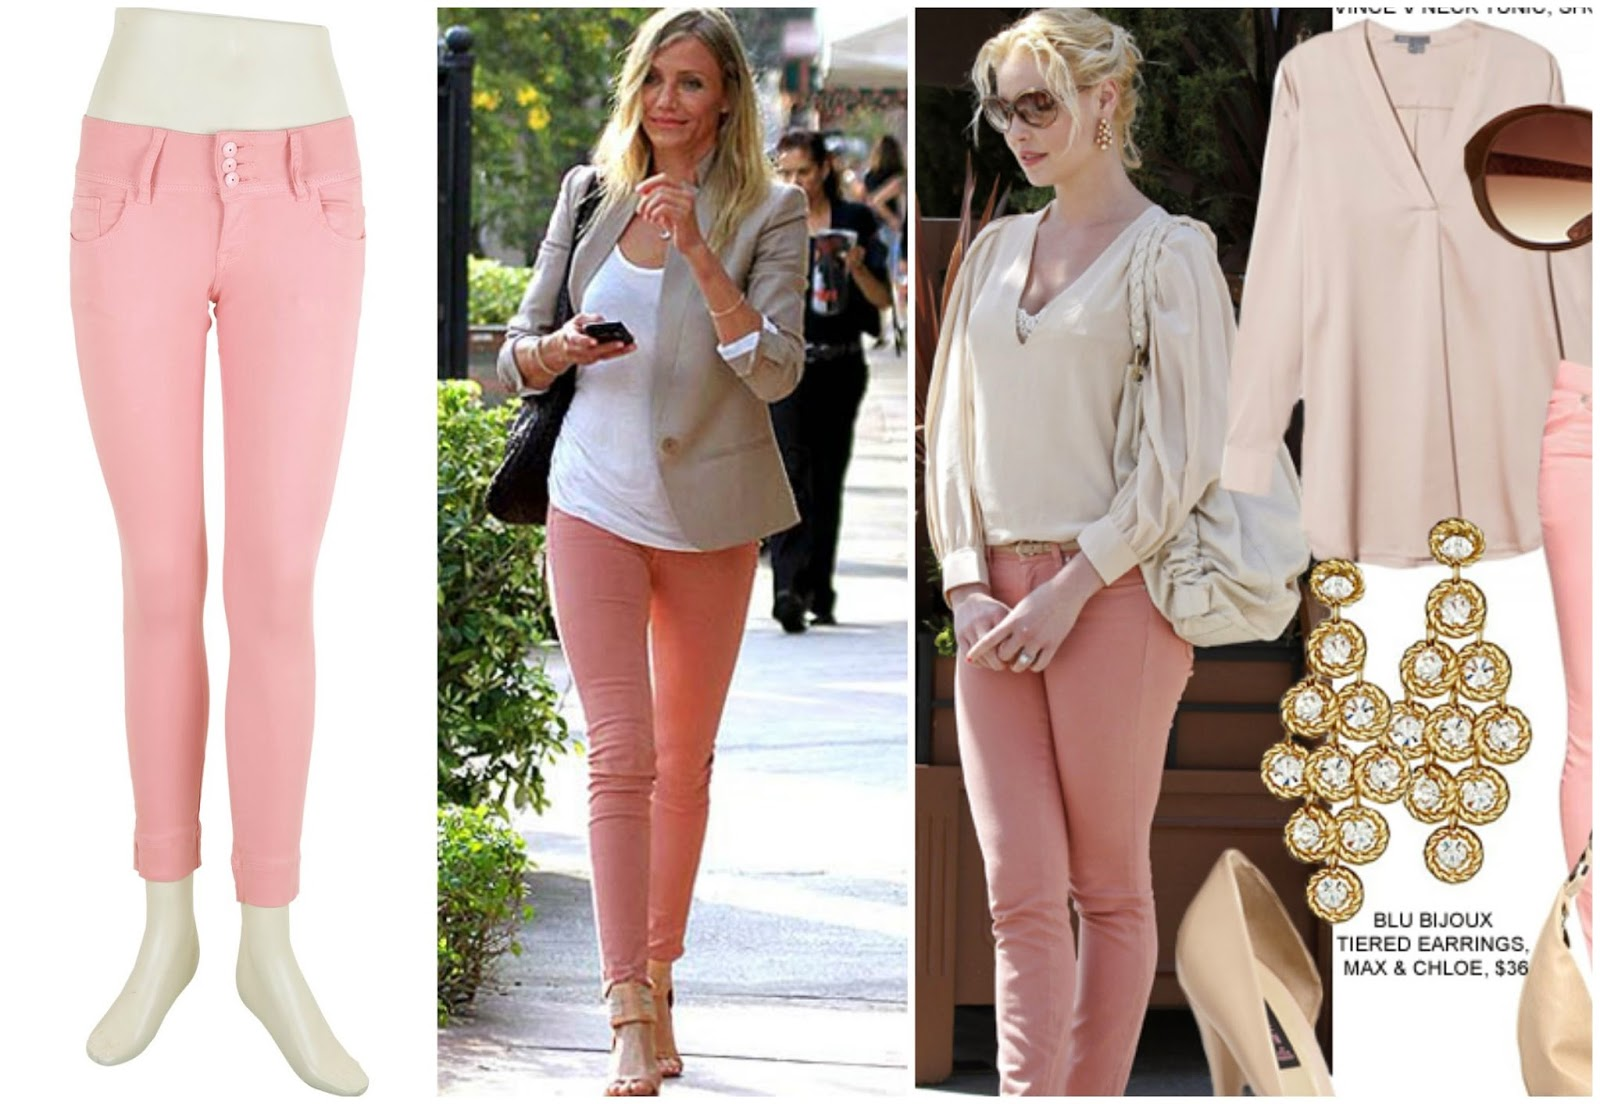 Deal pastel pink jeans outfit, celebs style pink jeans, pink fashion